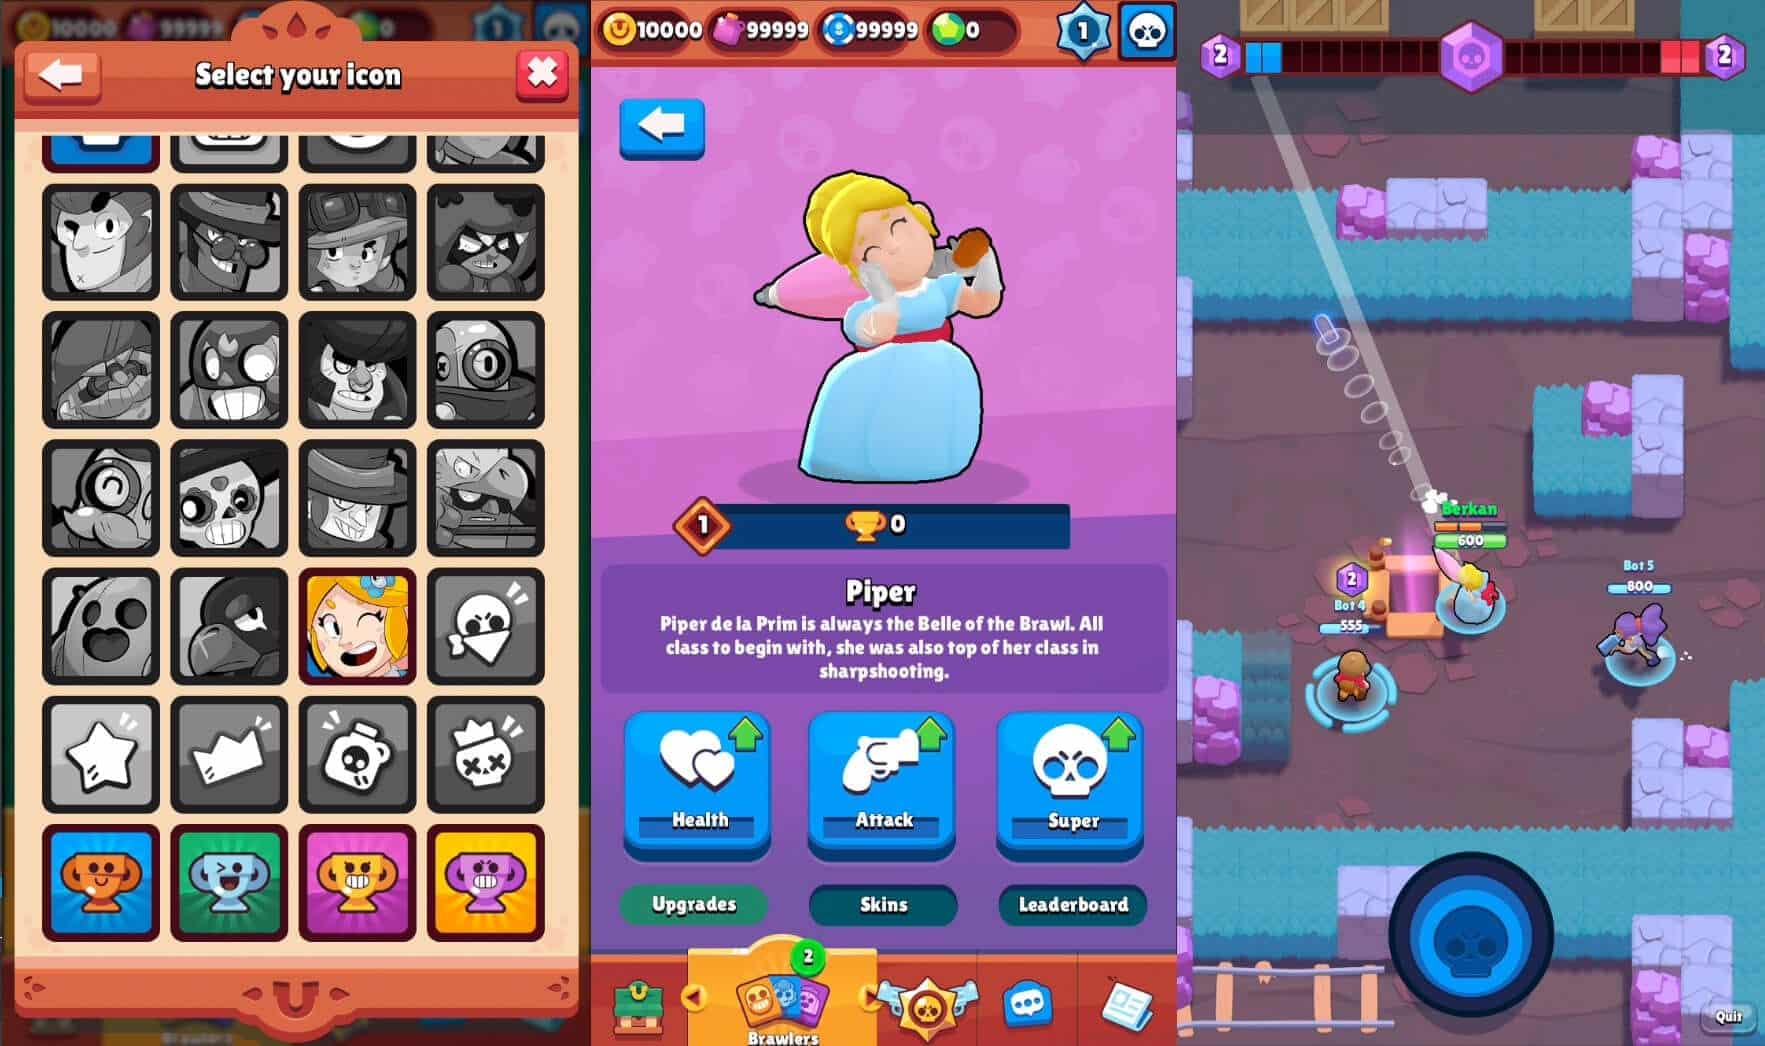 Brawl Stars July Update: New Brawler Piper, New Map, Balance Changes Brawl Stars UP!